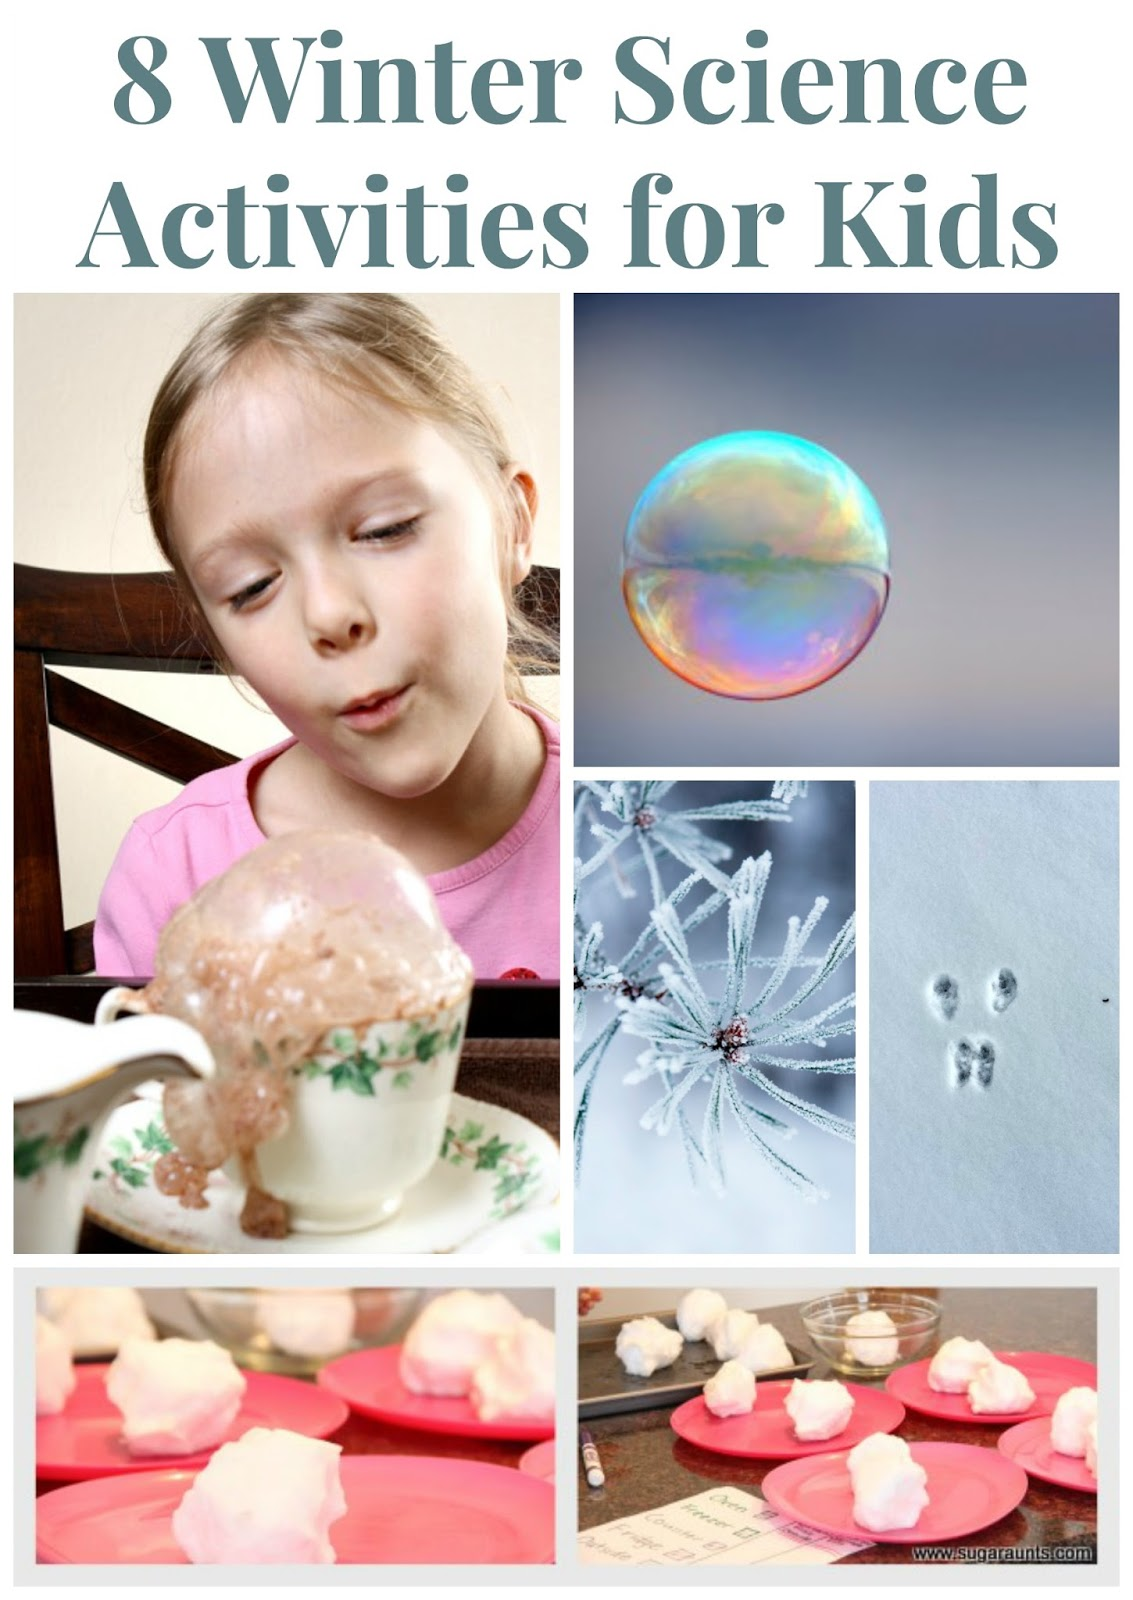 science activities winter preschool kid experiments op projects lessons theme melting activity toddler fun crafts kindergarten snow easy visit stir